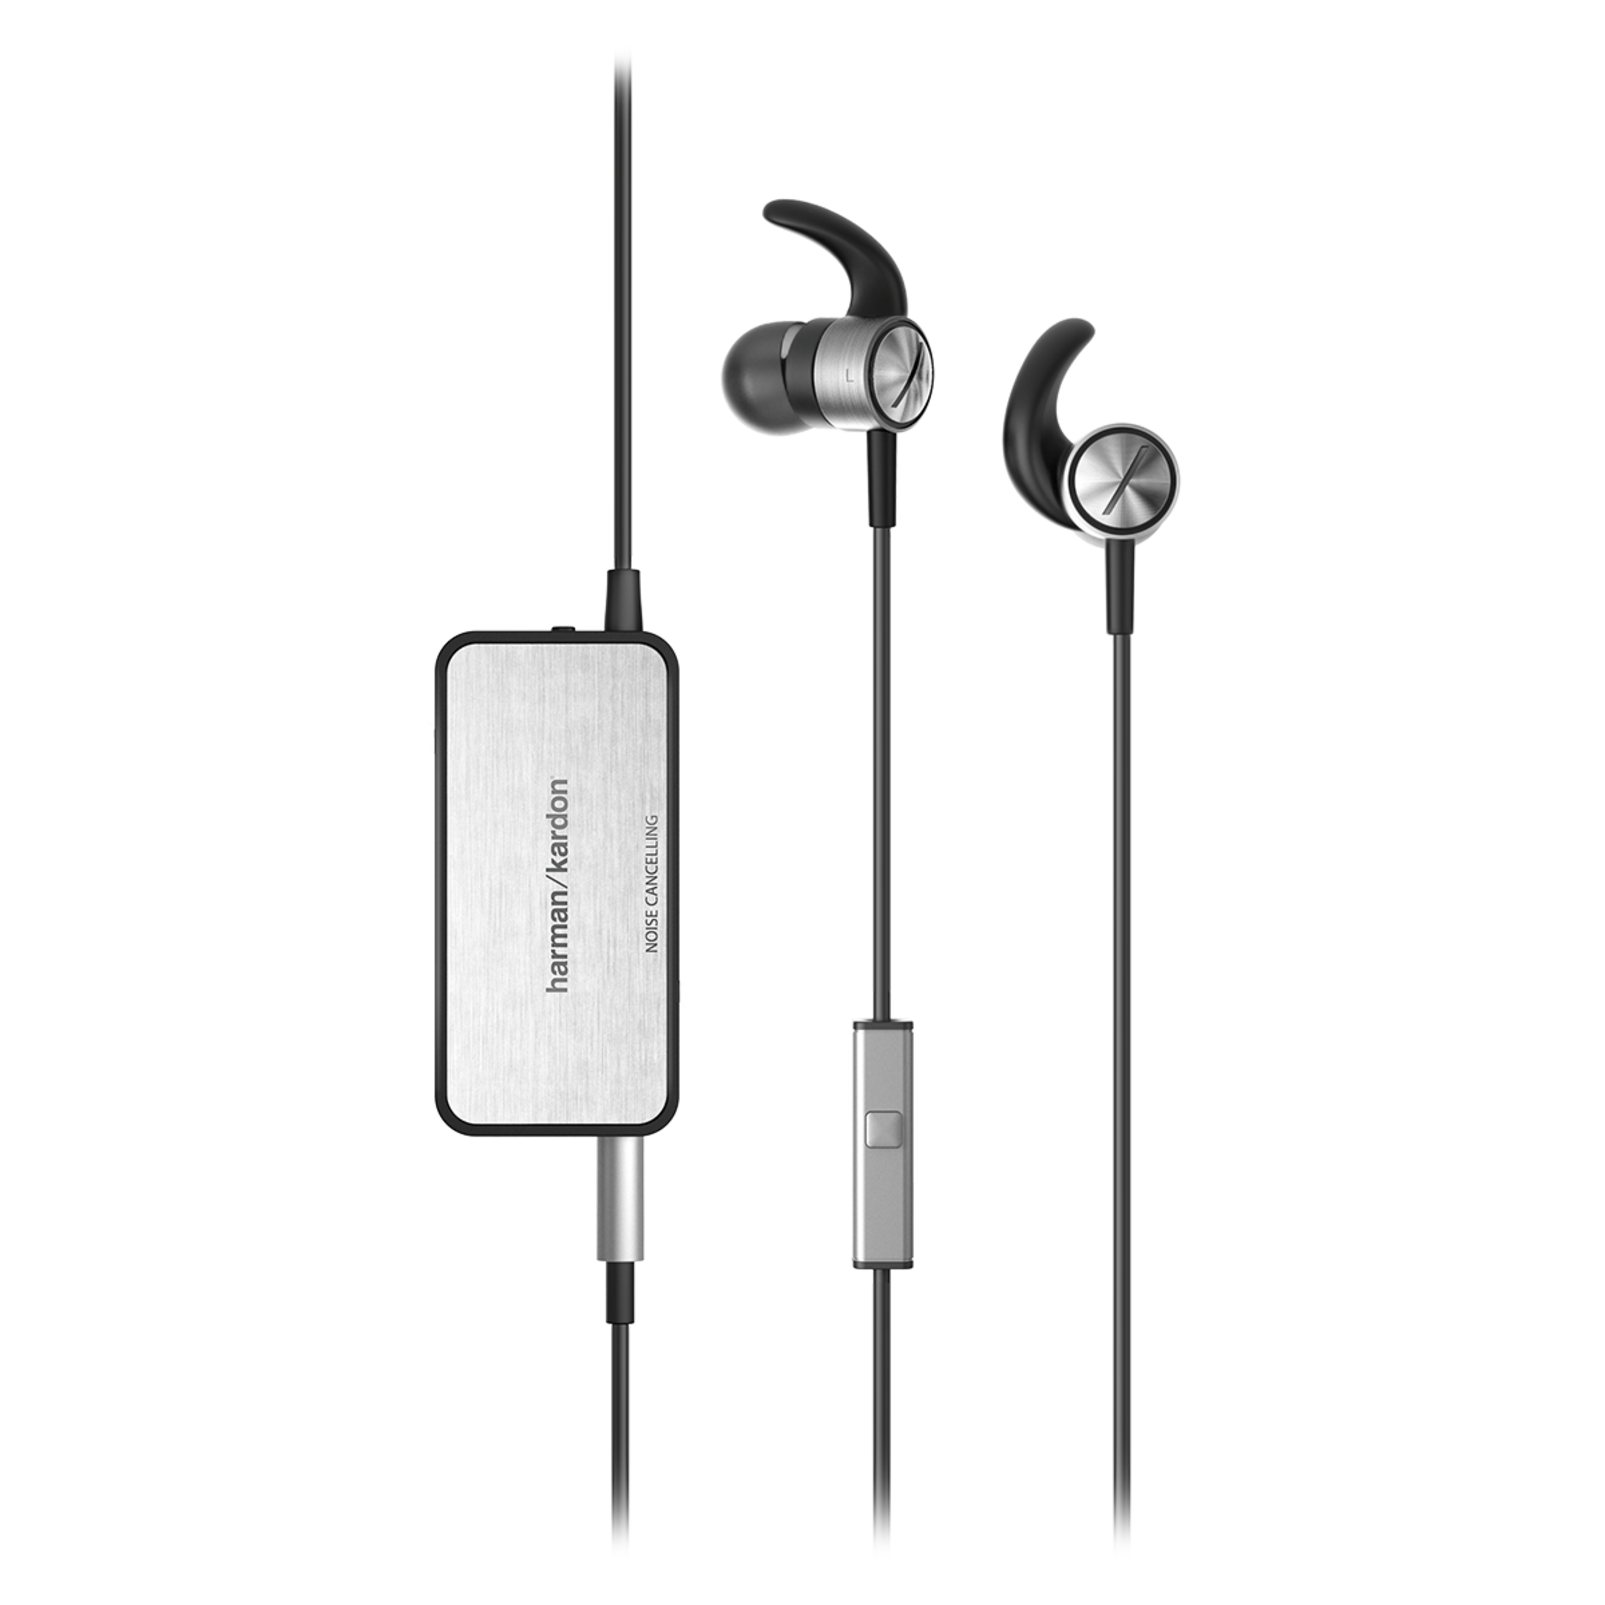 Soho II NC - Black - Active, noise-cancelling, in-ear headphones with microphone - Detailshot 1